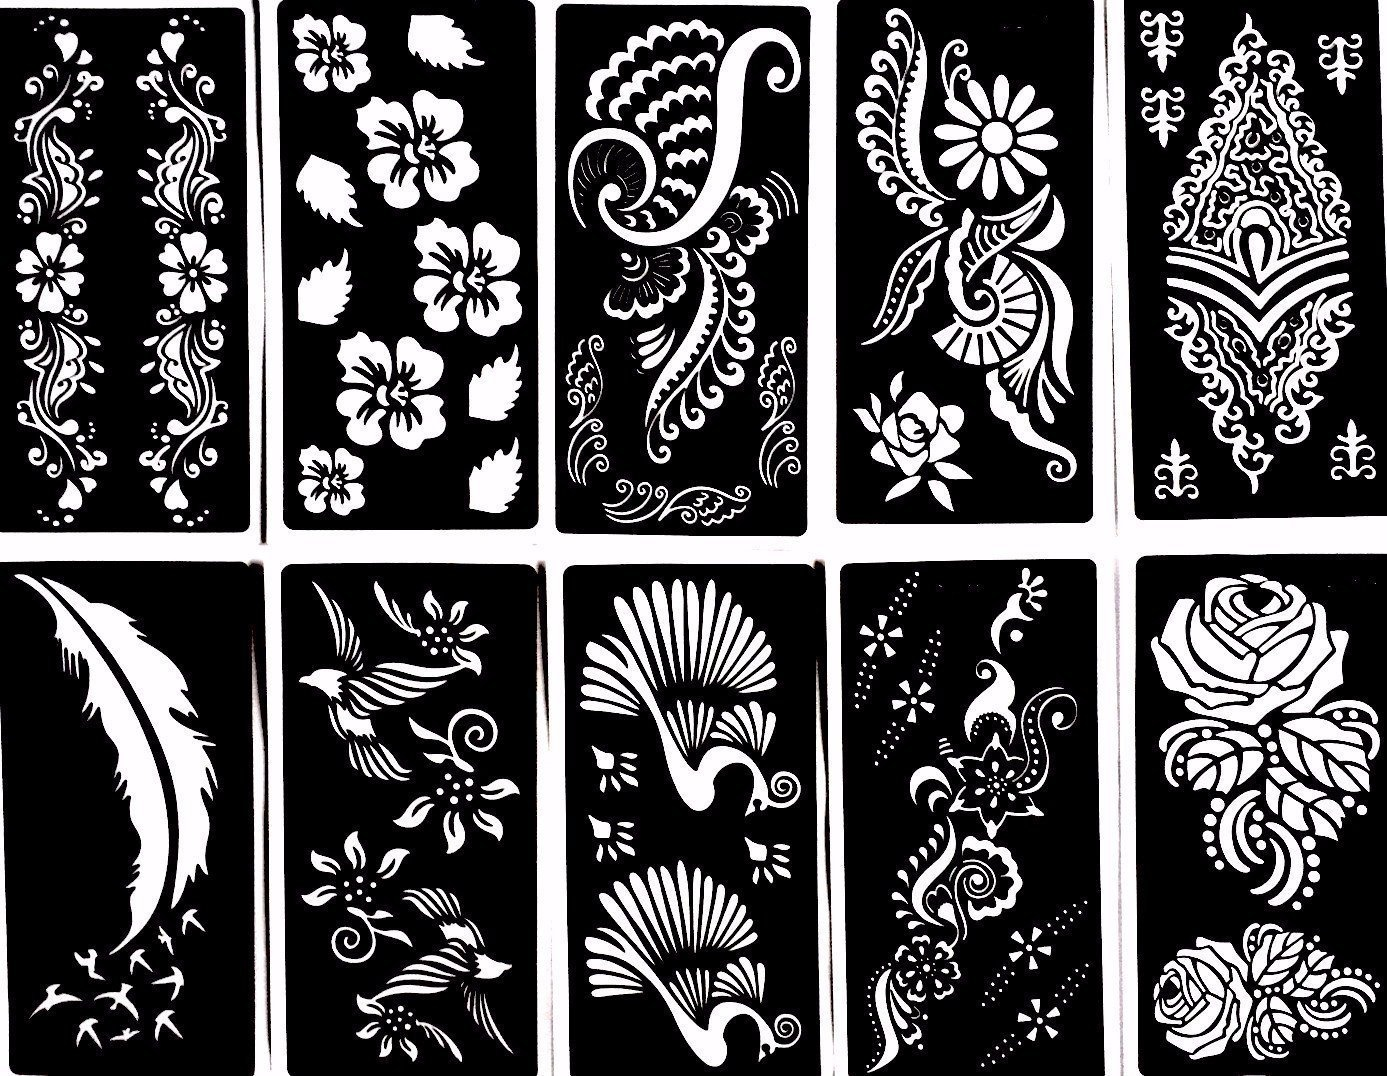 Henna Stencil Tattoo 10 Sheets Self Adhesive Temporary Tattoo Template Beautiful Body Art Painting Mehndi Designs By Gilded Girl Shop Online For Beauty In New Zealand